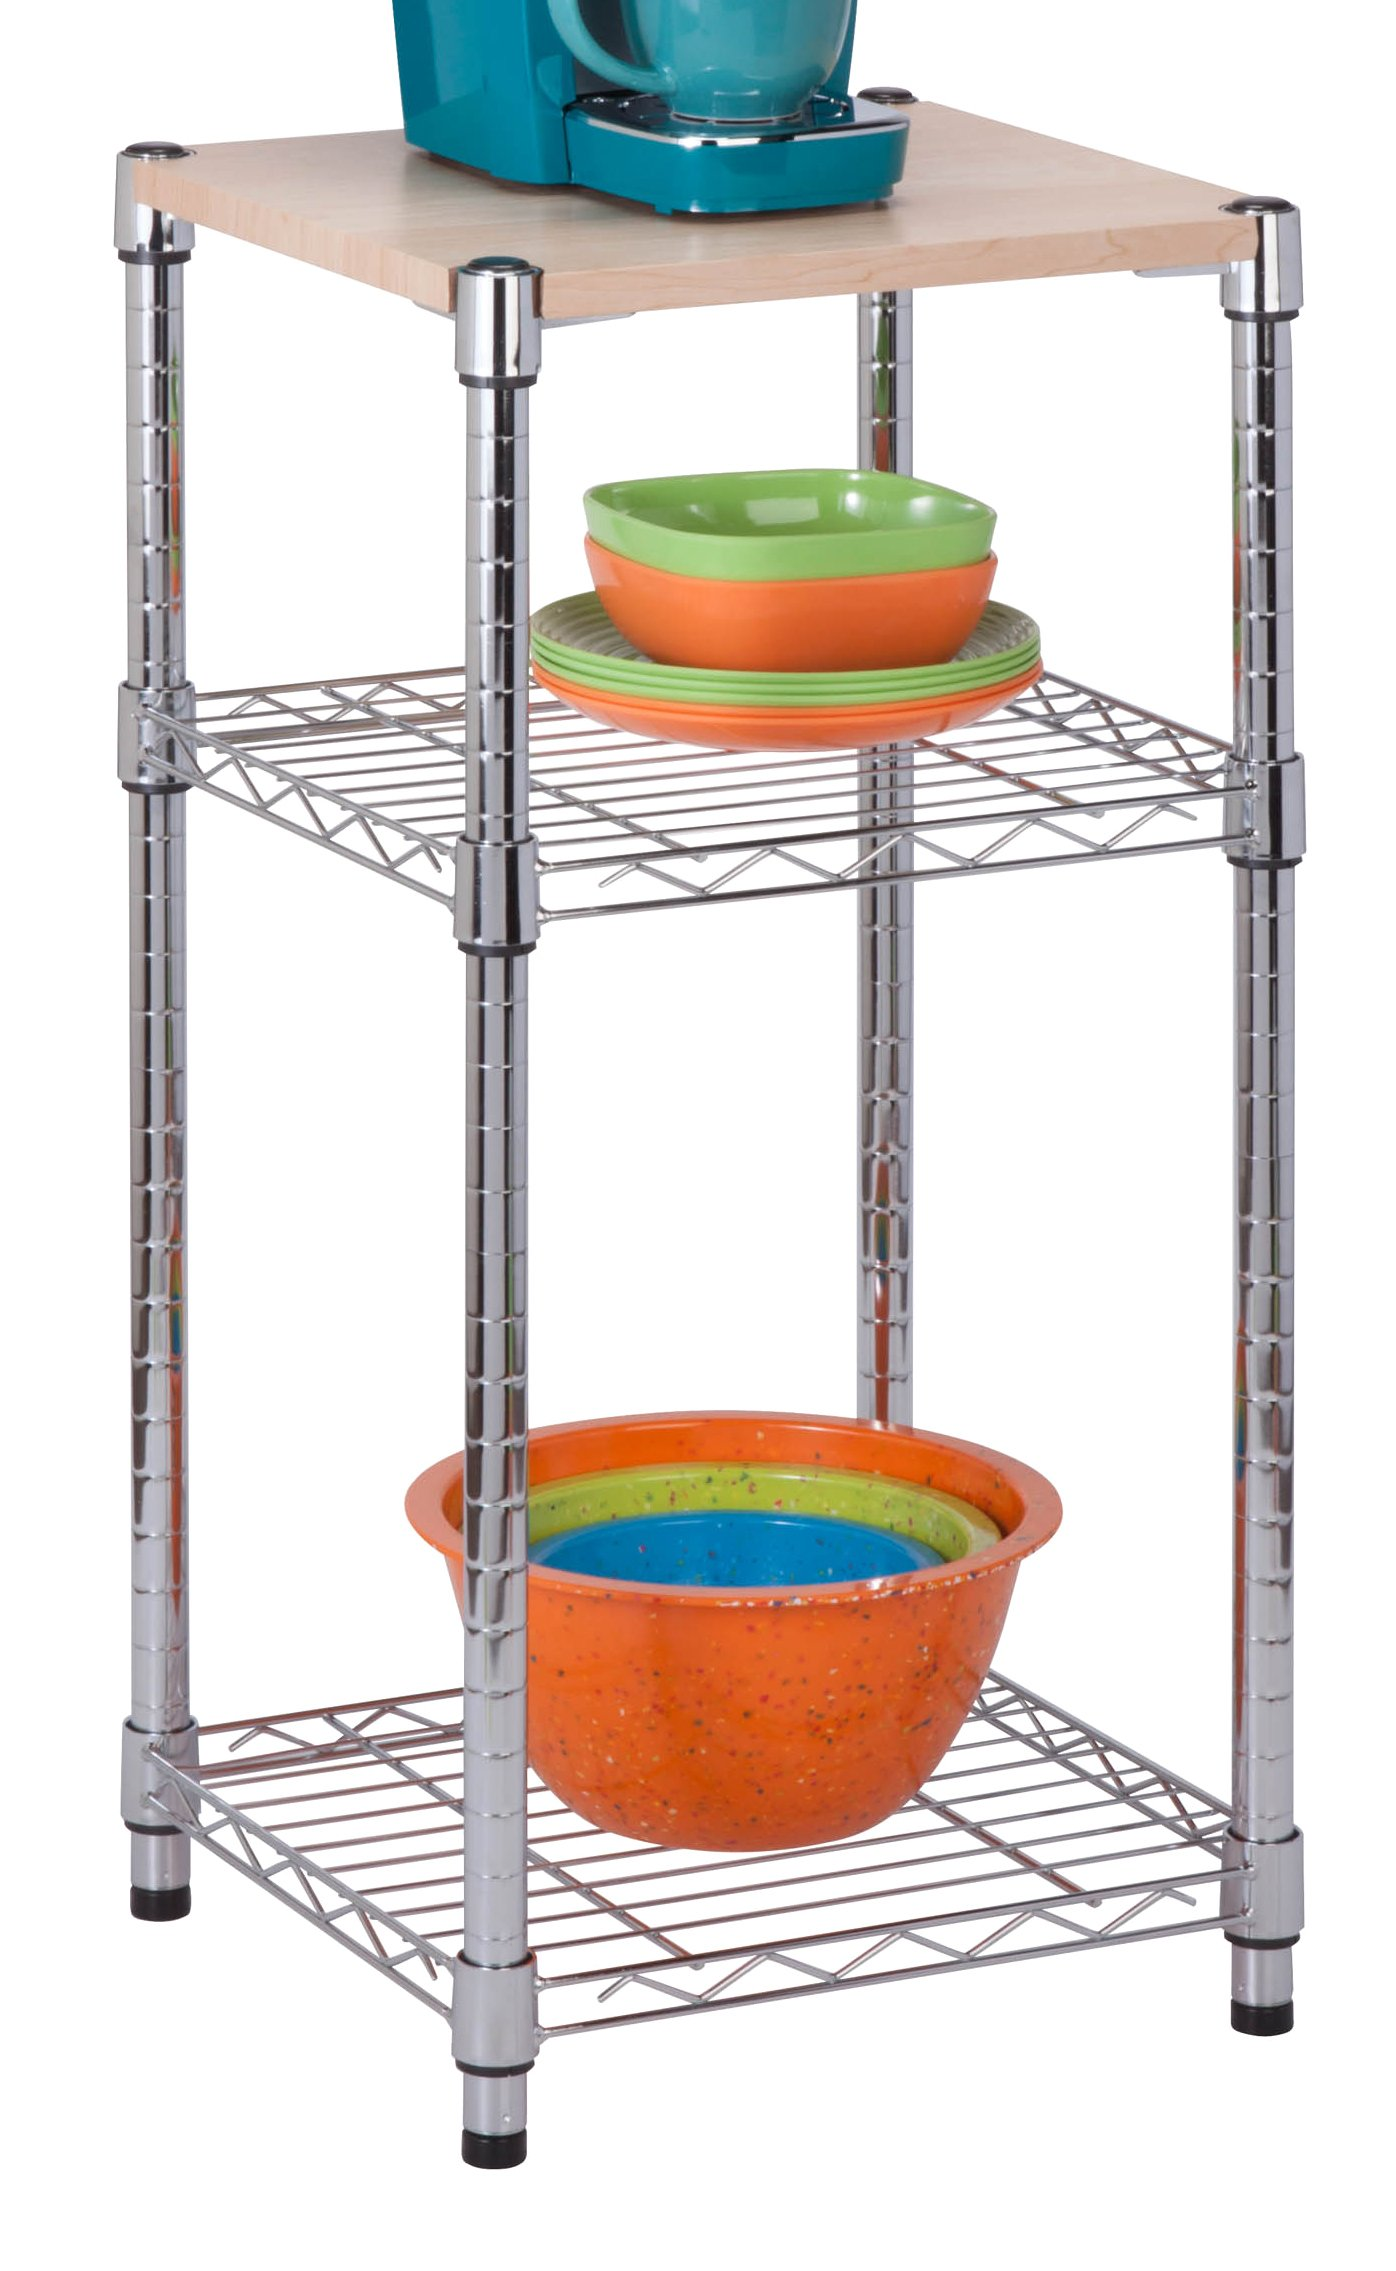 Honey-Can-Do SHF-04345 3-Tier Steel Shelving Unit with Wood Top, Chrome, 14L x 15W x 30H